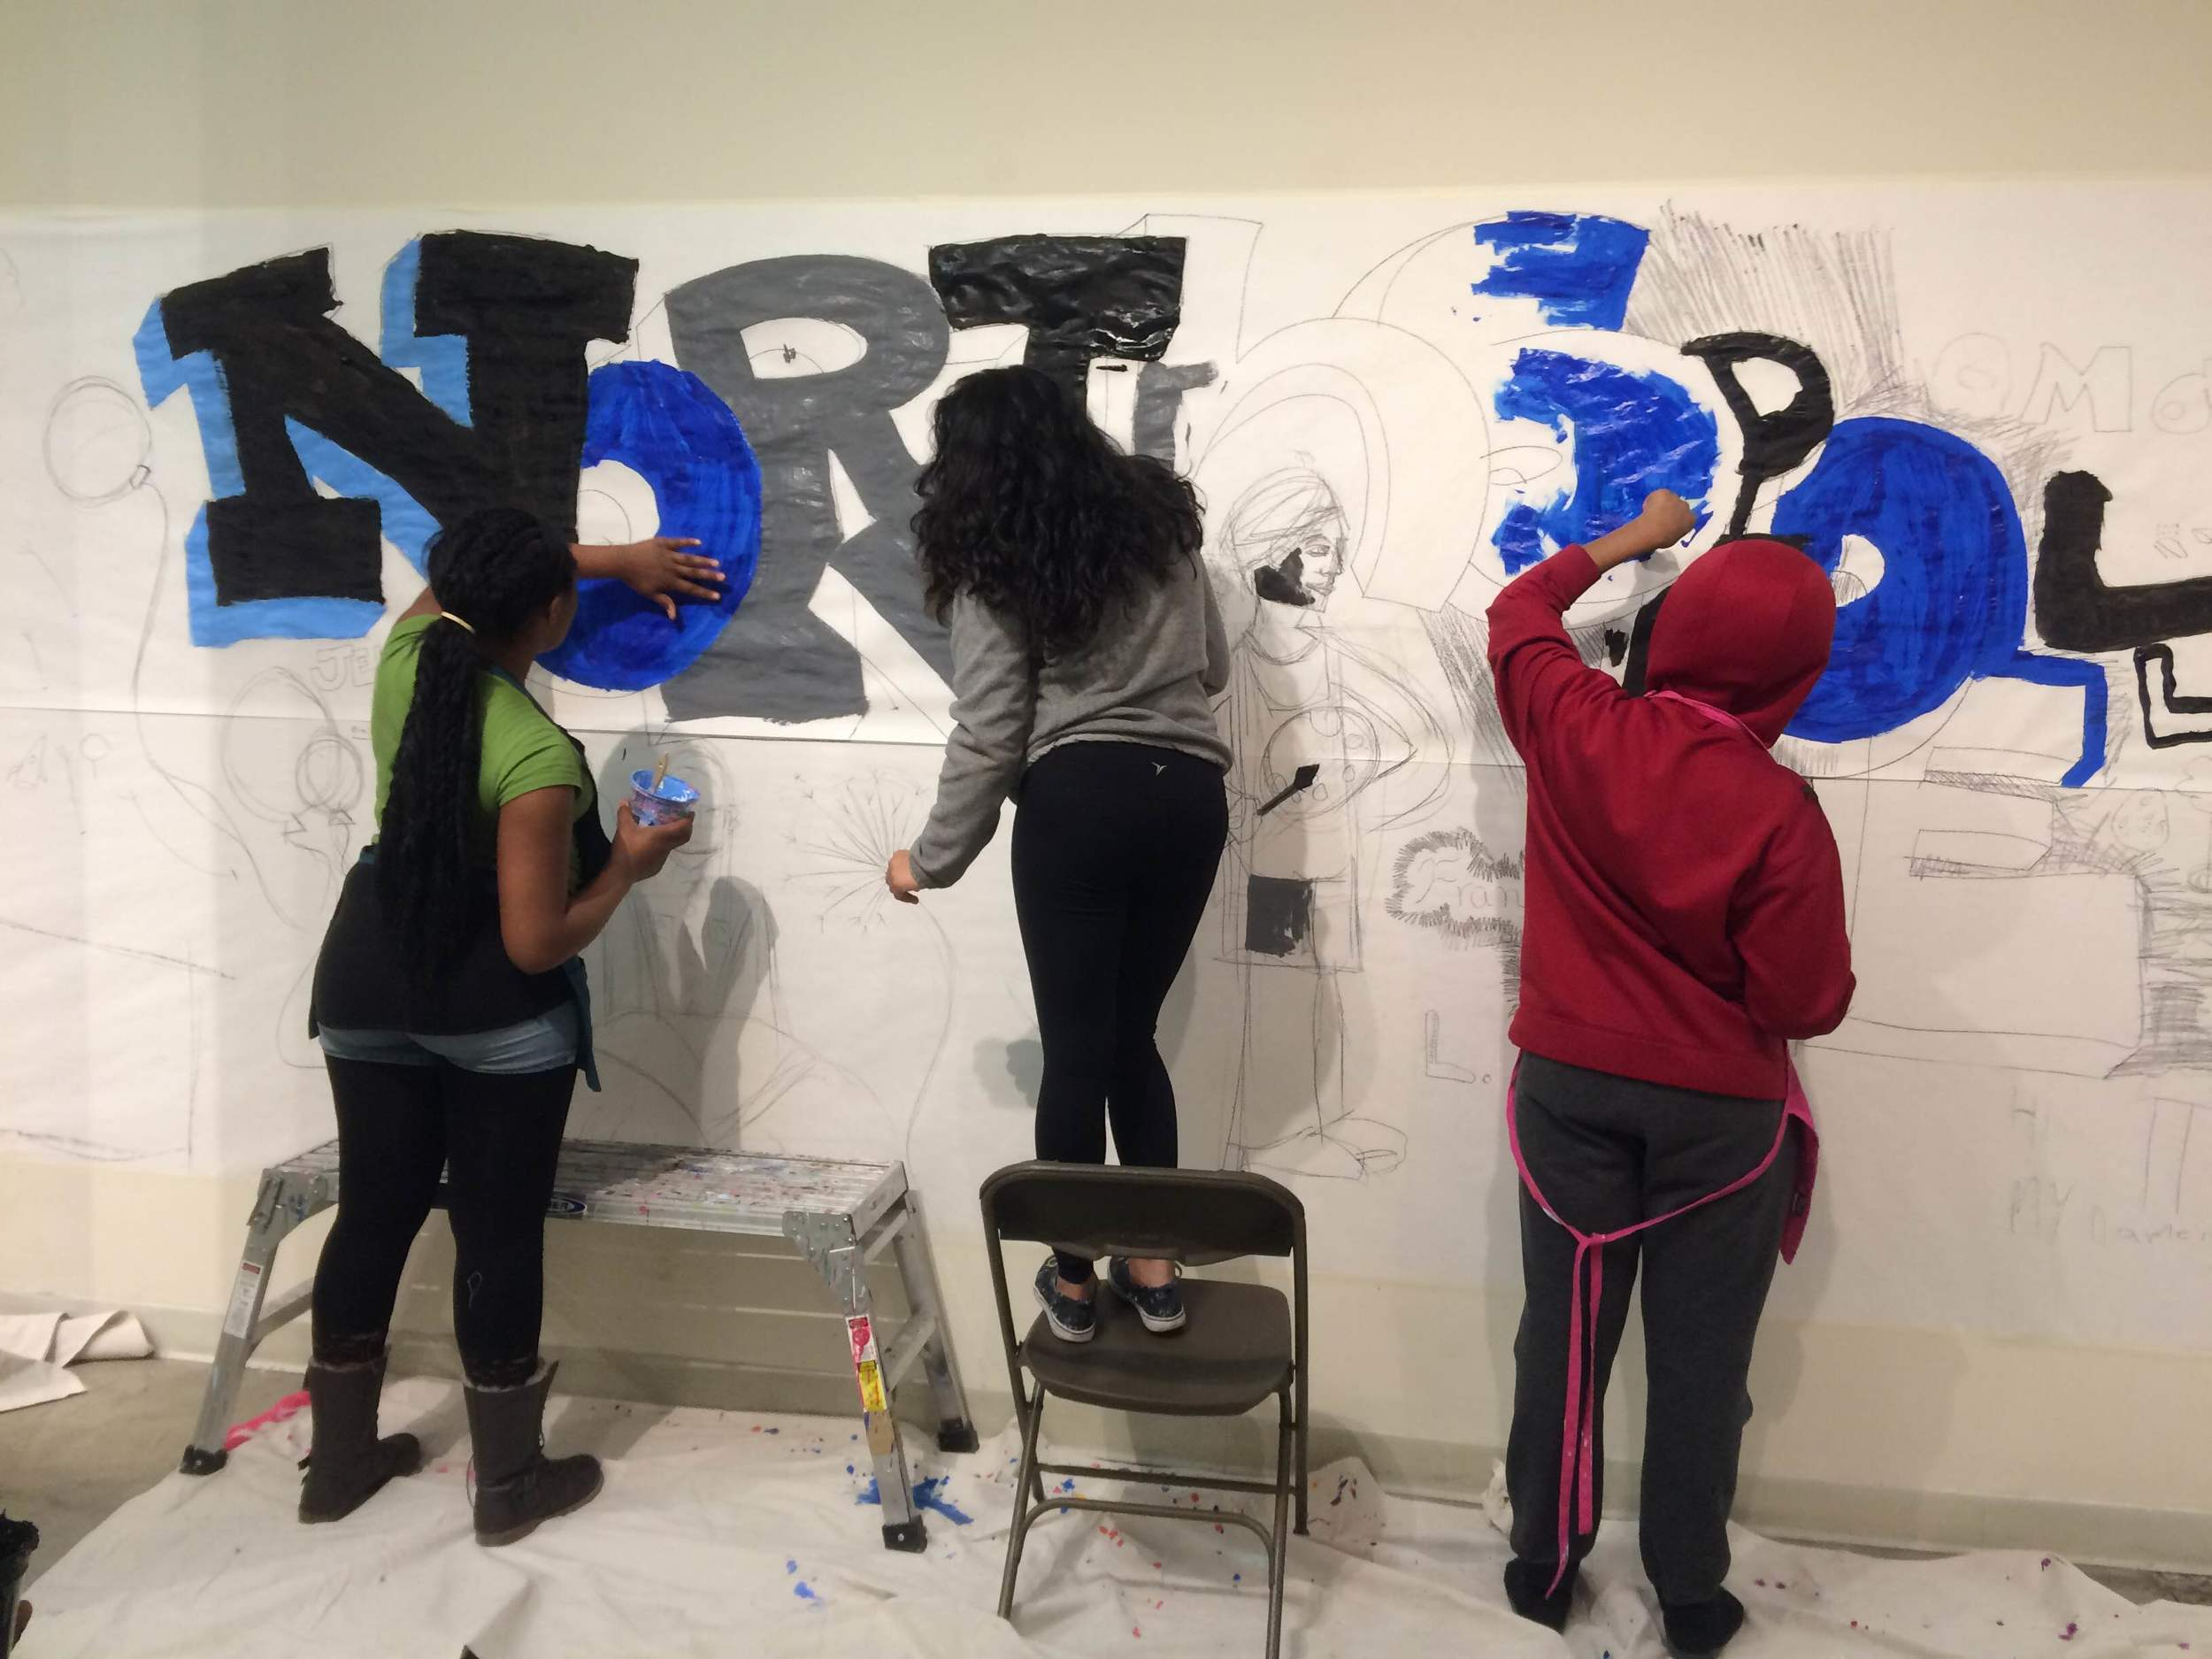 Painting the temporary mural at MCAD!